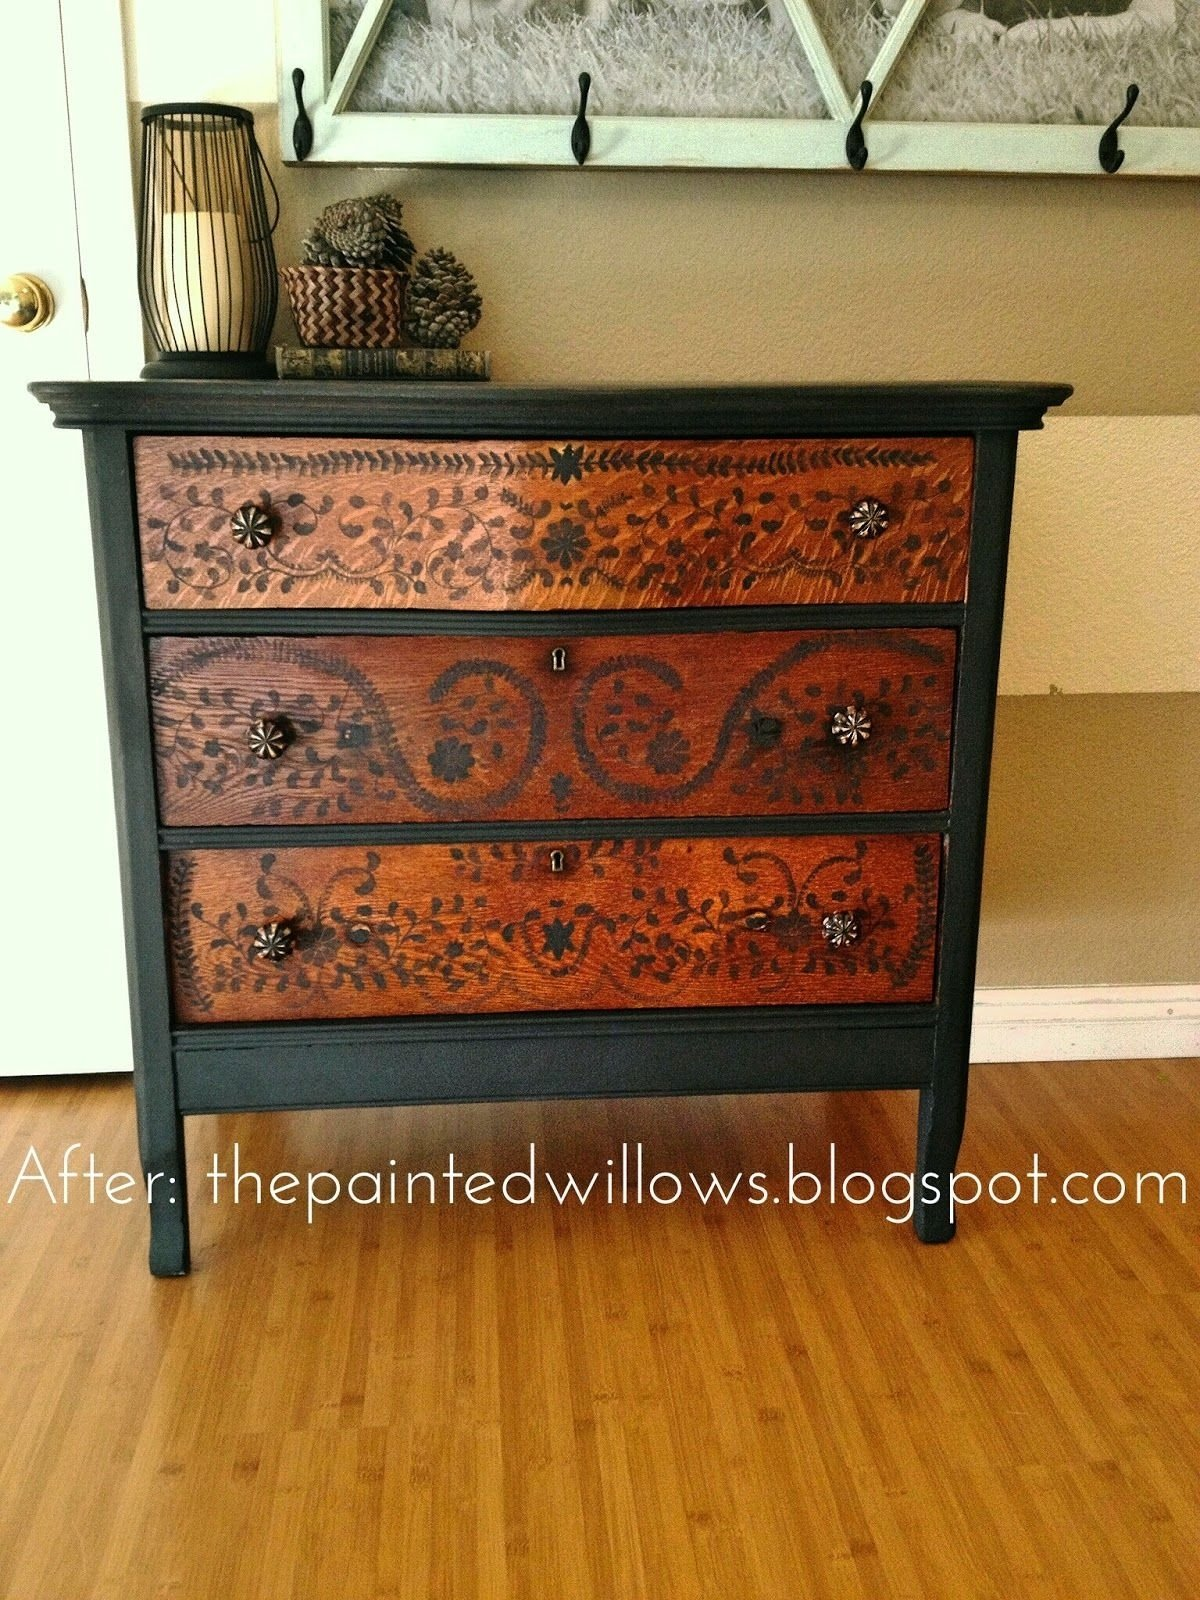 10 Famous Ideas For Painting A Dresser furniture gallery tons of before and after diy furniture redo ideas 1 2020